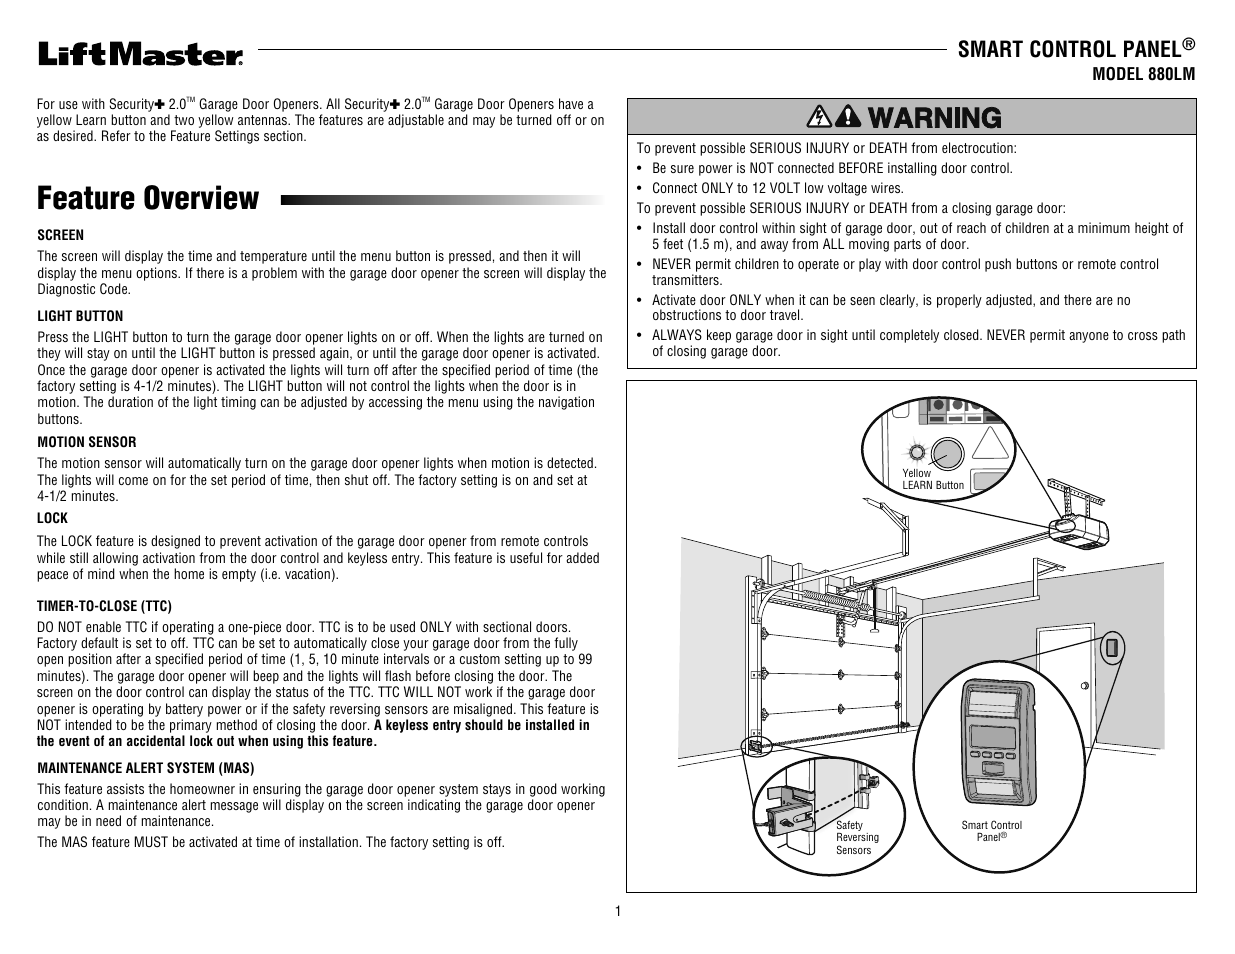 Liftmaster 880lm smart control panel user manual 4 pages rubansaba